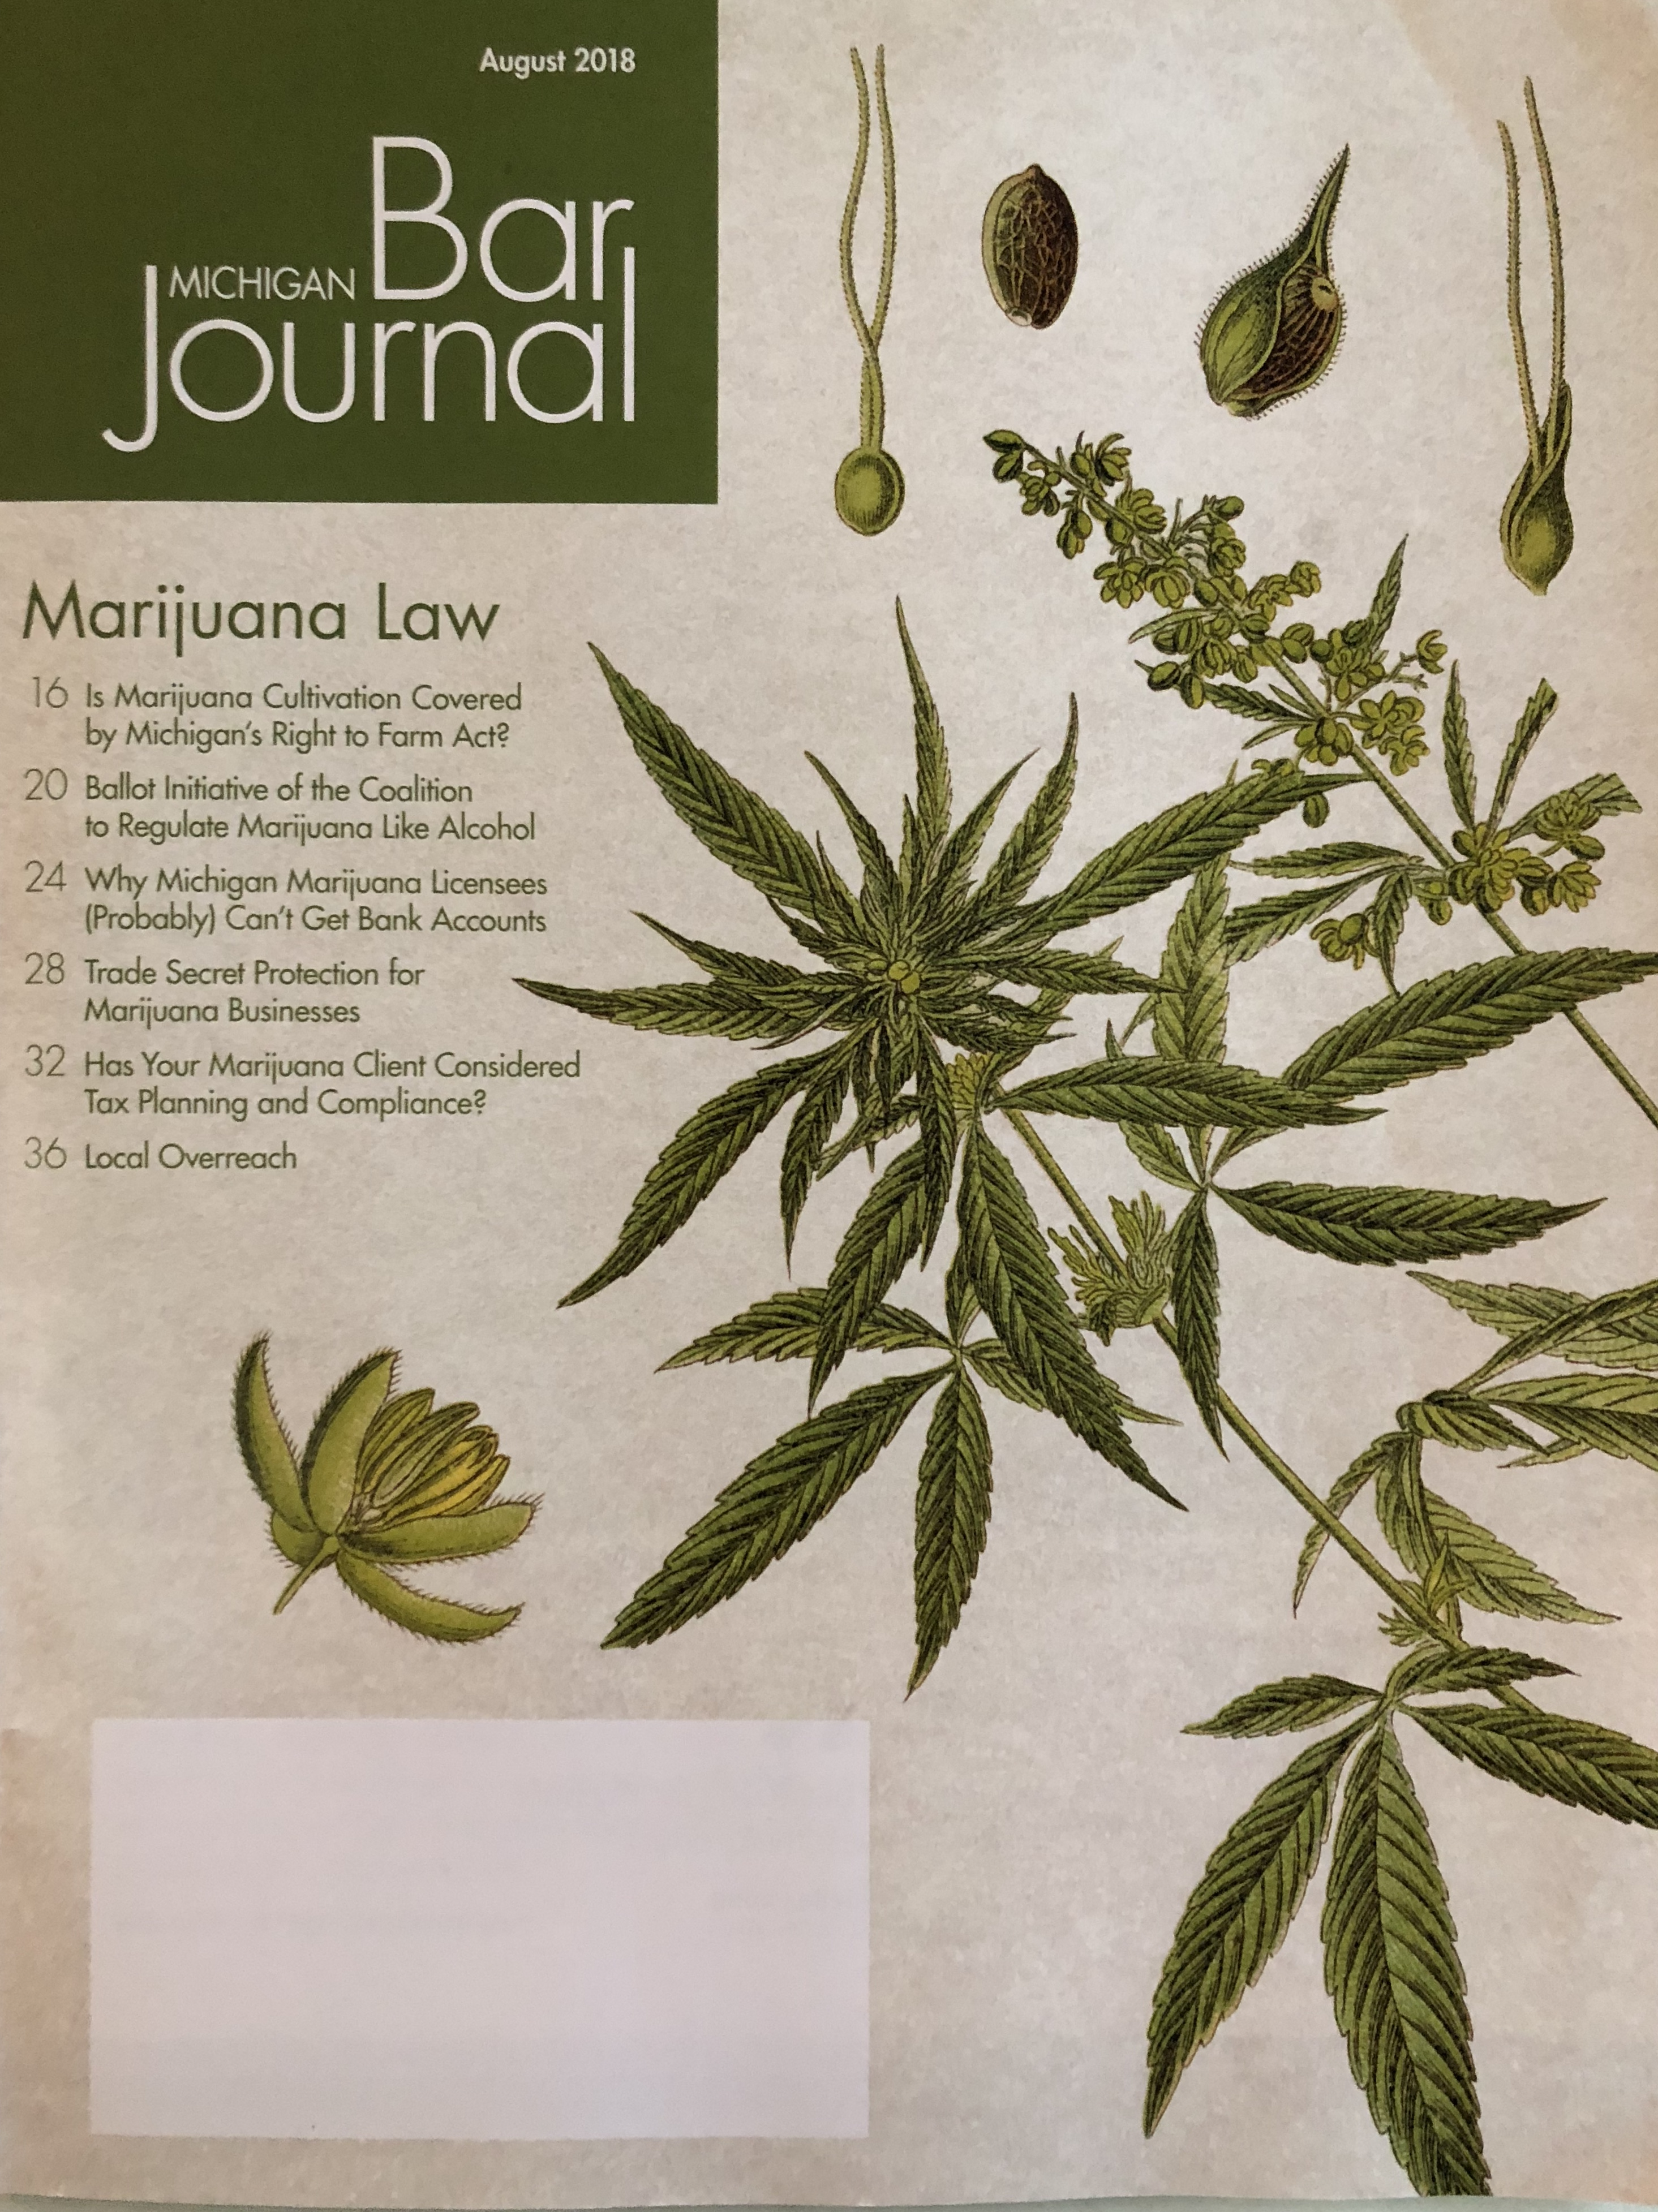 cover of the State Bar of Michigan's Journal about cannabis and Michigan's right to farm act